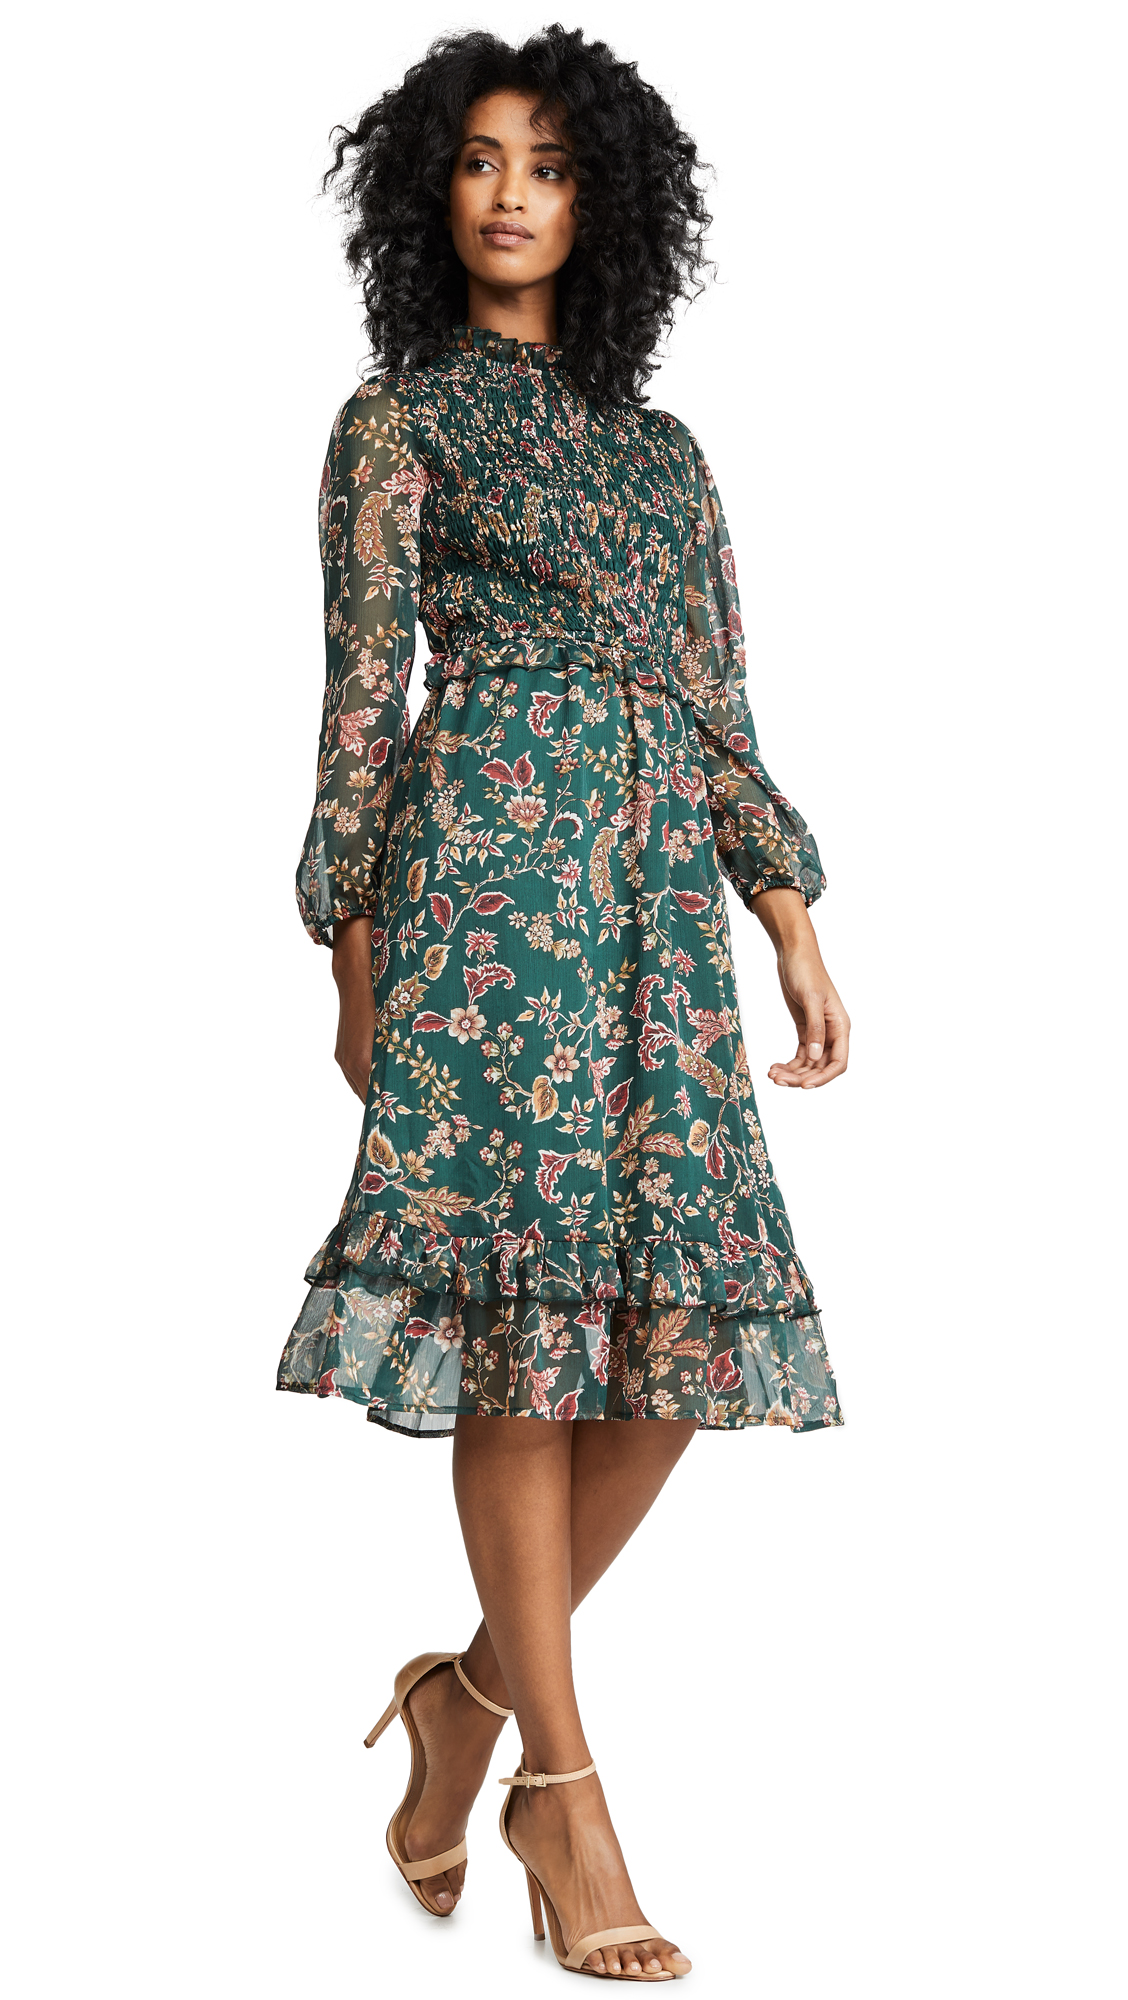 Moon River Floral Midi Dress - Pine Paisley